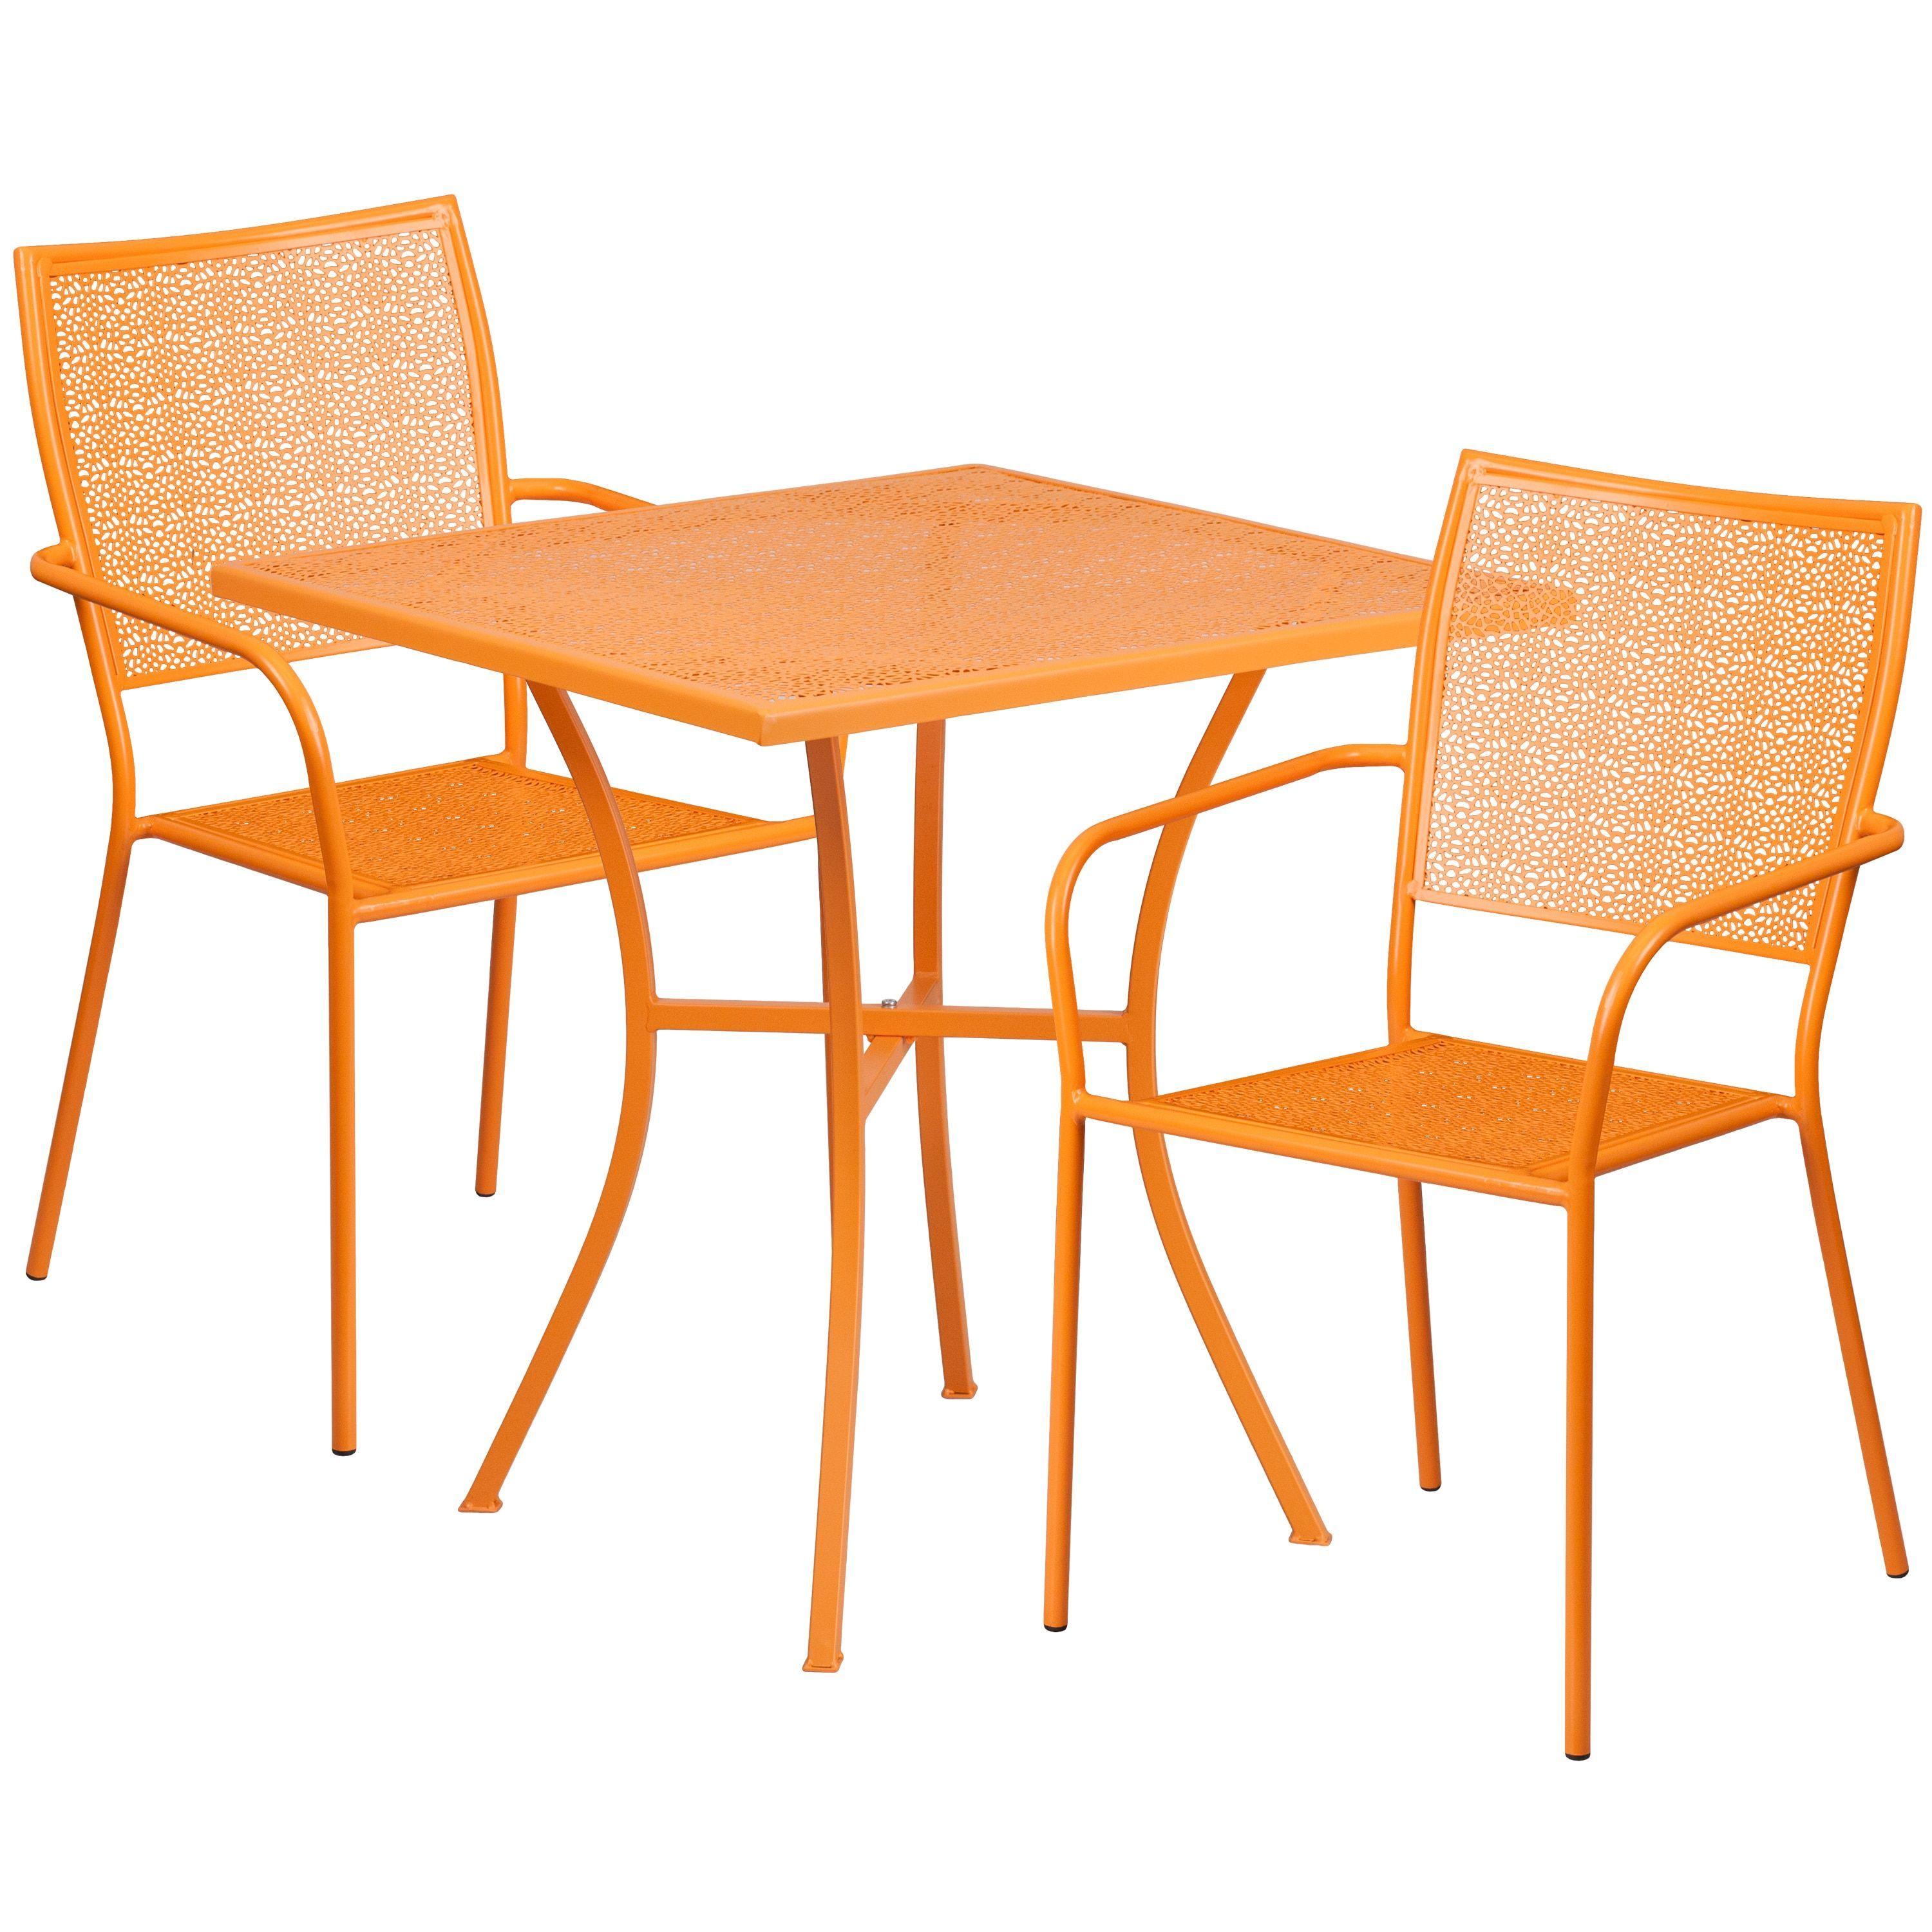 Karako 3 Piece Artistic Designed Orange Small Bistro Set